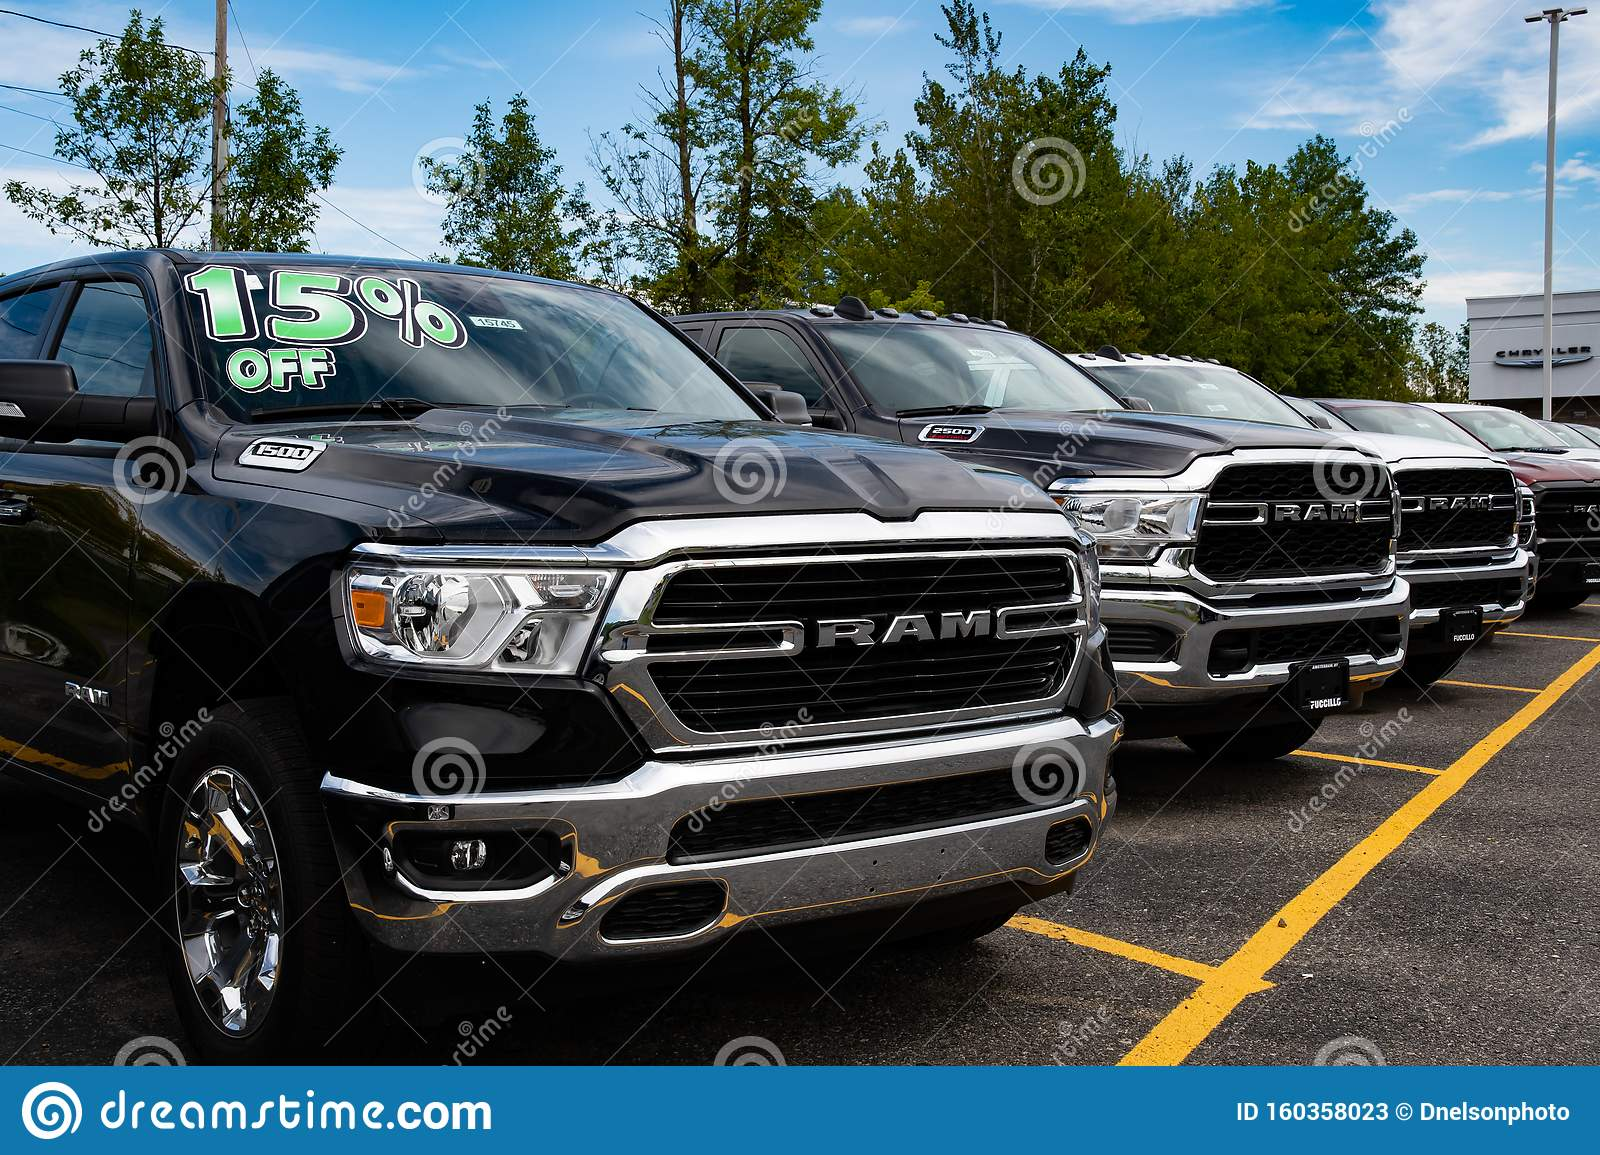 Pickup Trucks Line Photos Free Royalty Free Stock Photos From Dreamstime